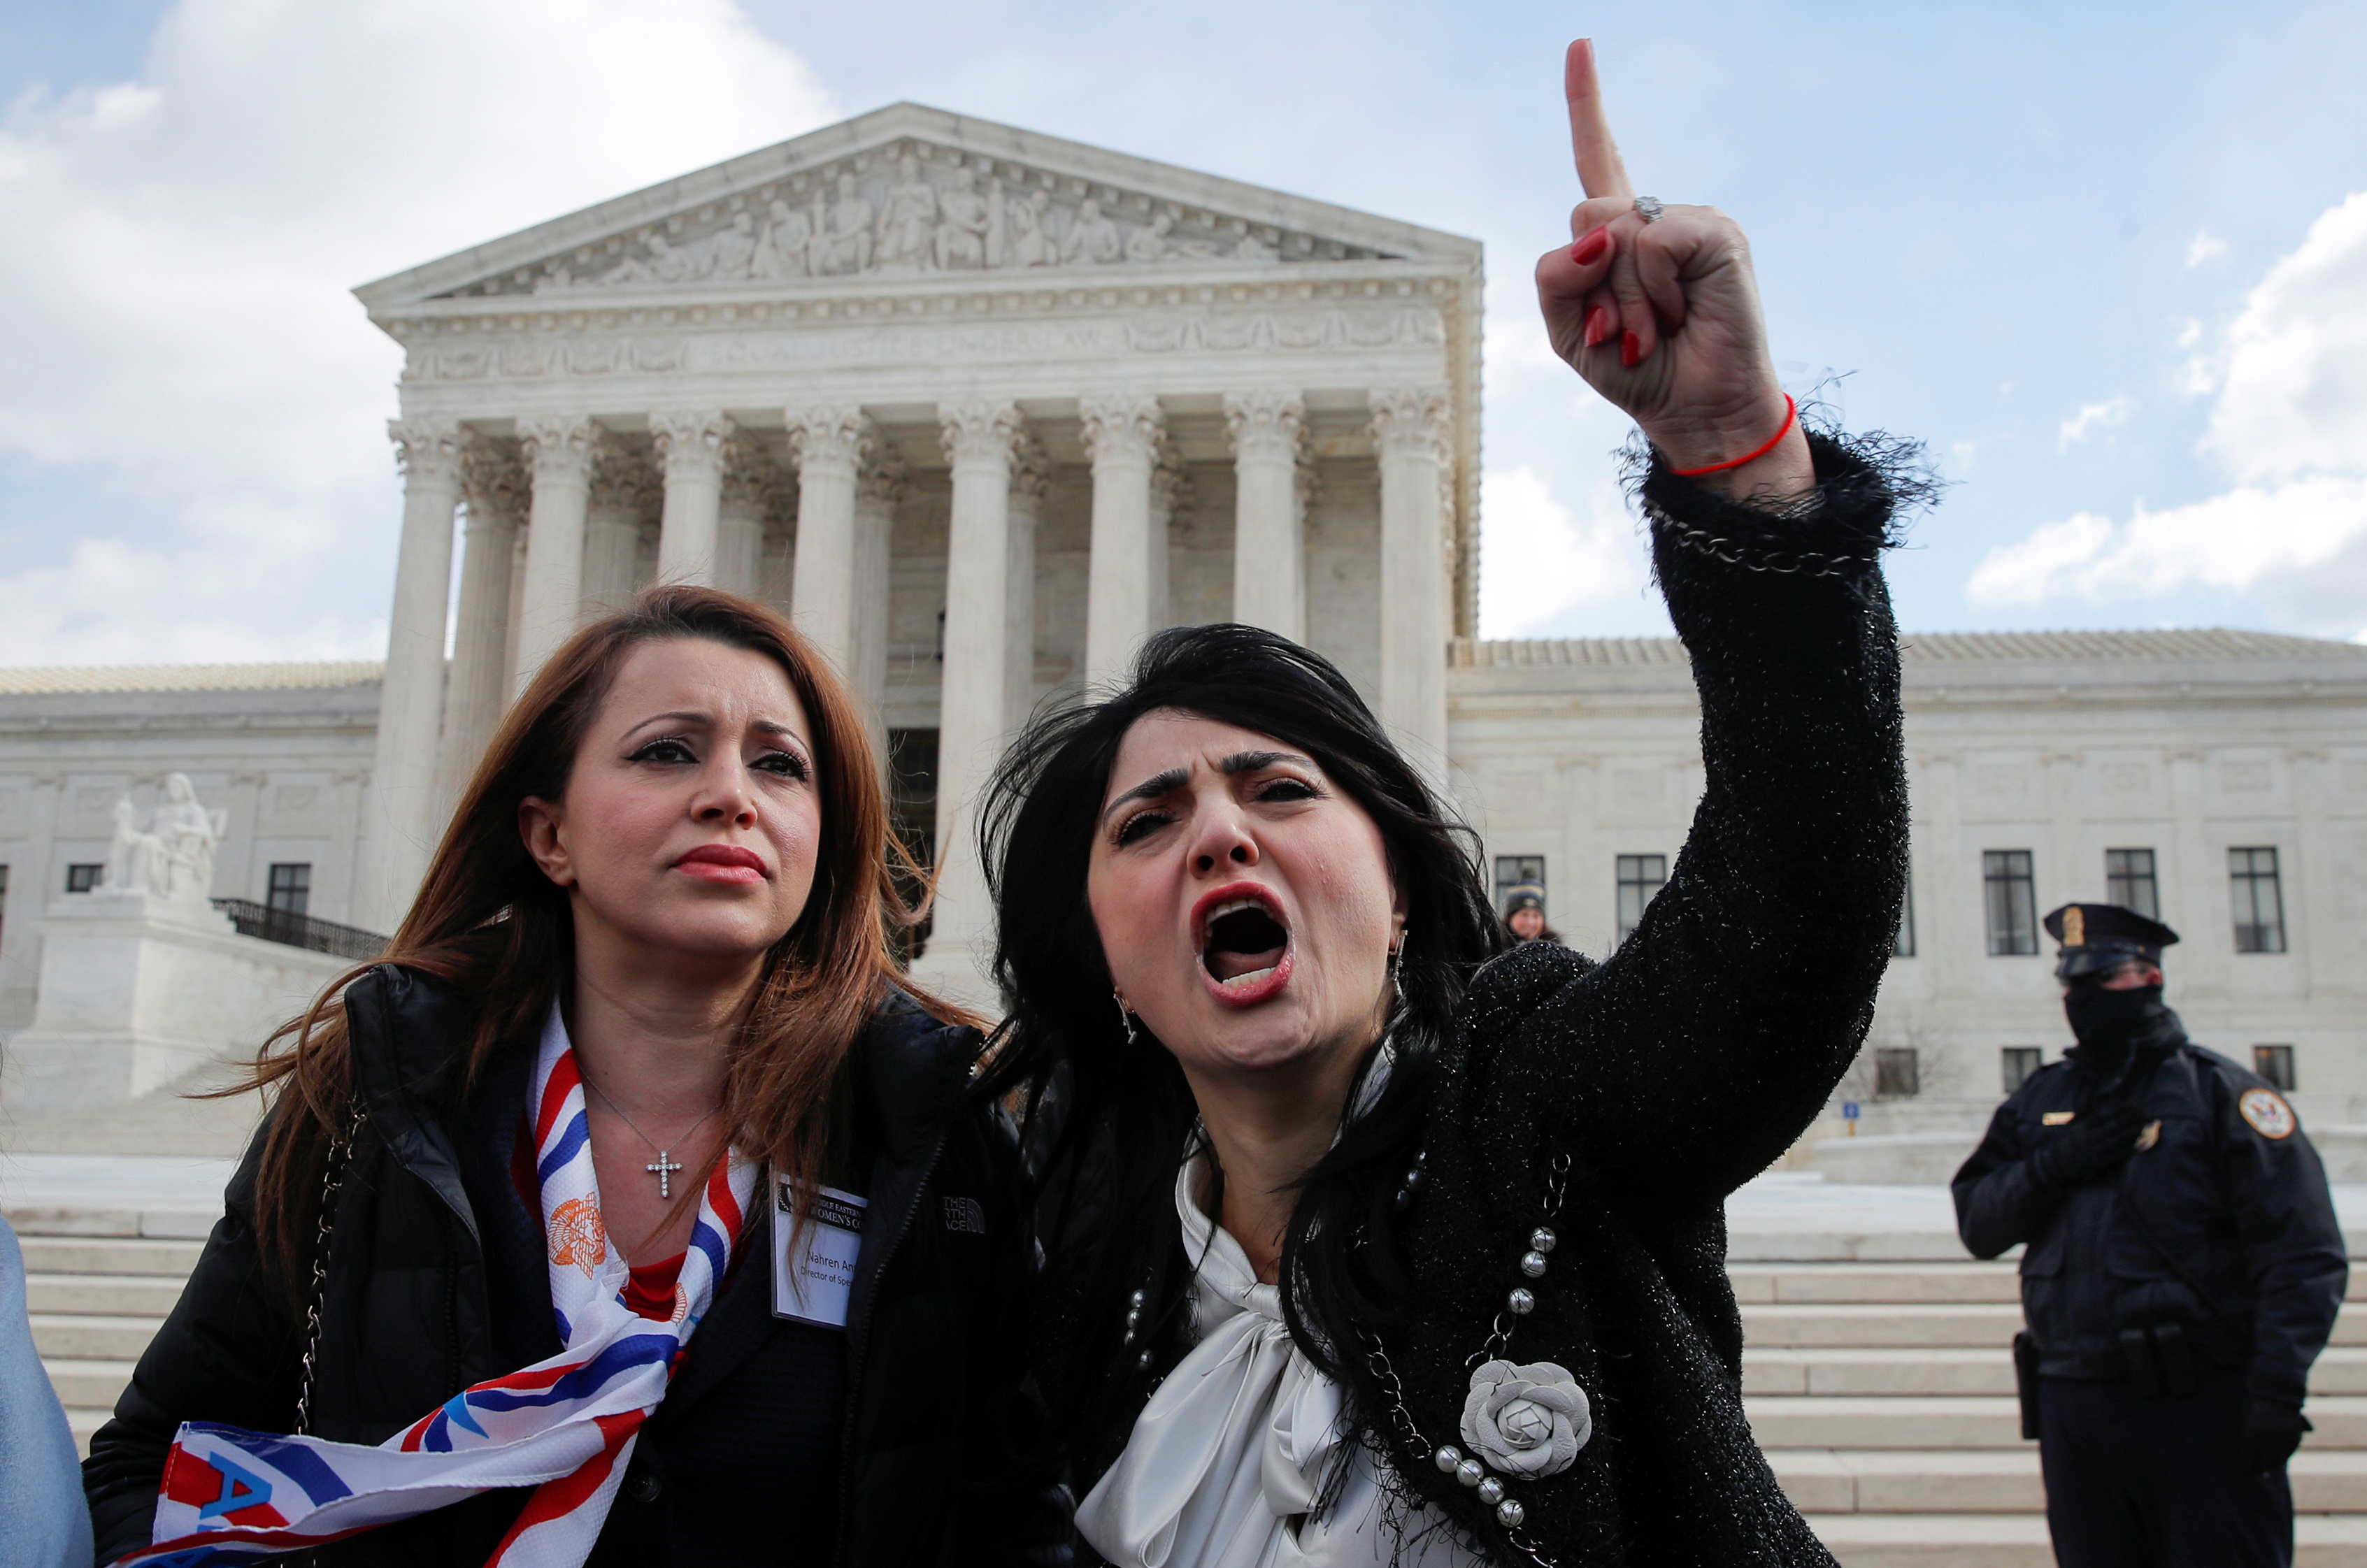 Protestors Rabia Kazan and Nahren Anweya interrupt a news conference to call for the resignation of U.S. Rep. Ilhan Omar (D-MN) outside the Supreme Court in Washington, U.S., March 6, 2019. REUTERS/Jim Young